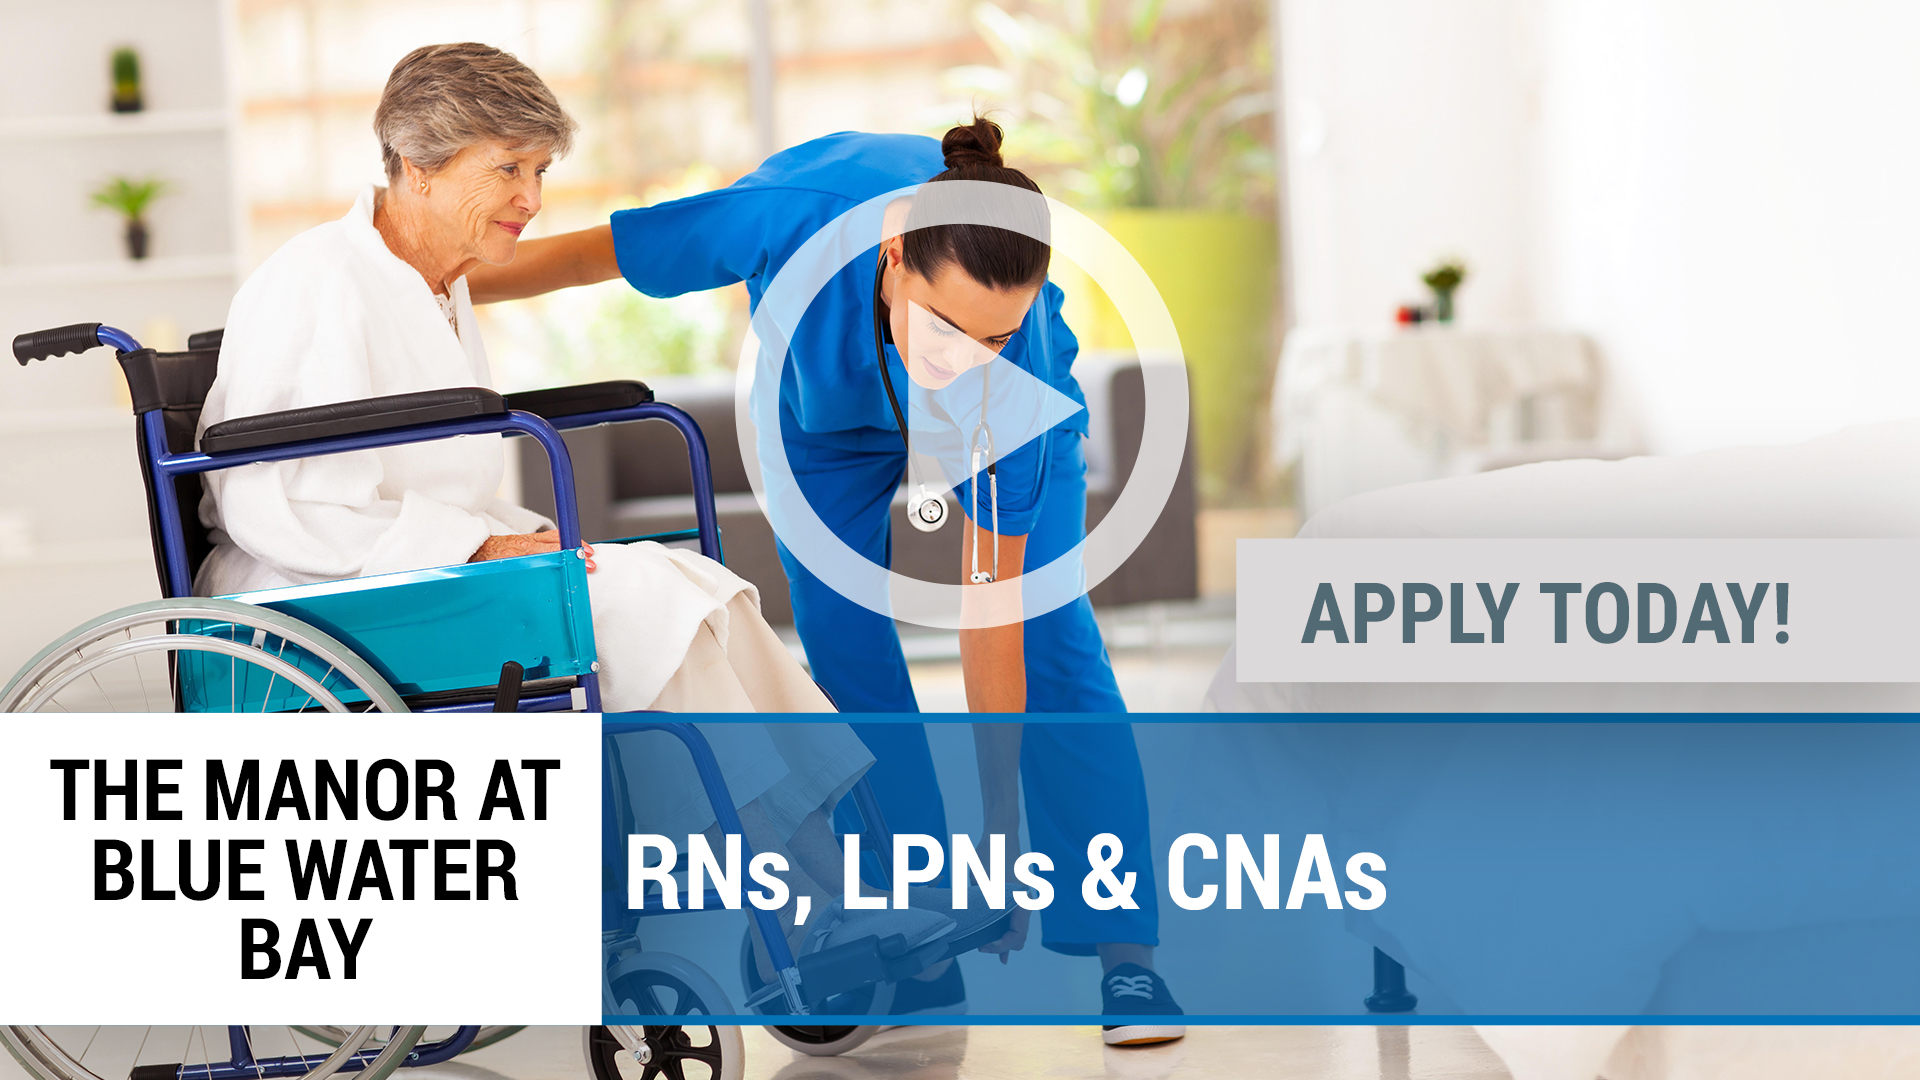 Watch our careers video for available job opening RNs, LPNs & CNAs in Niceville, FL